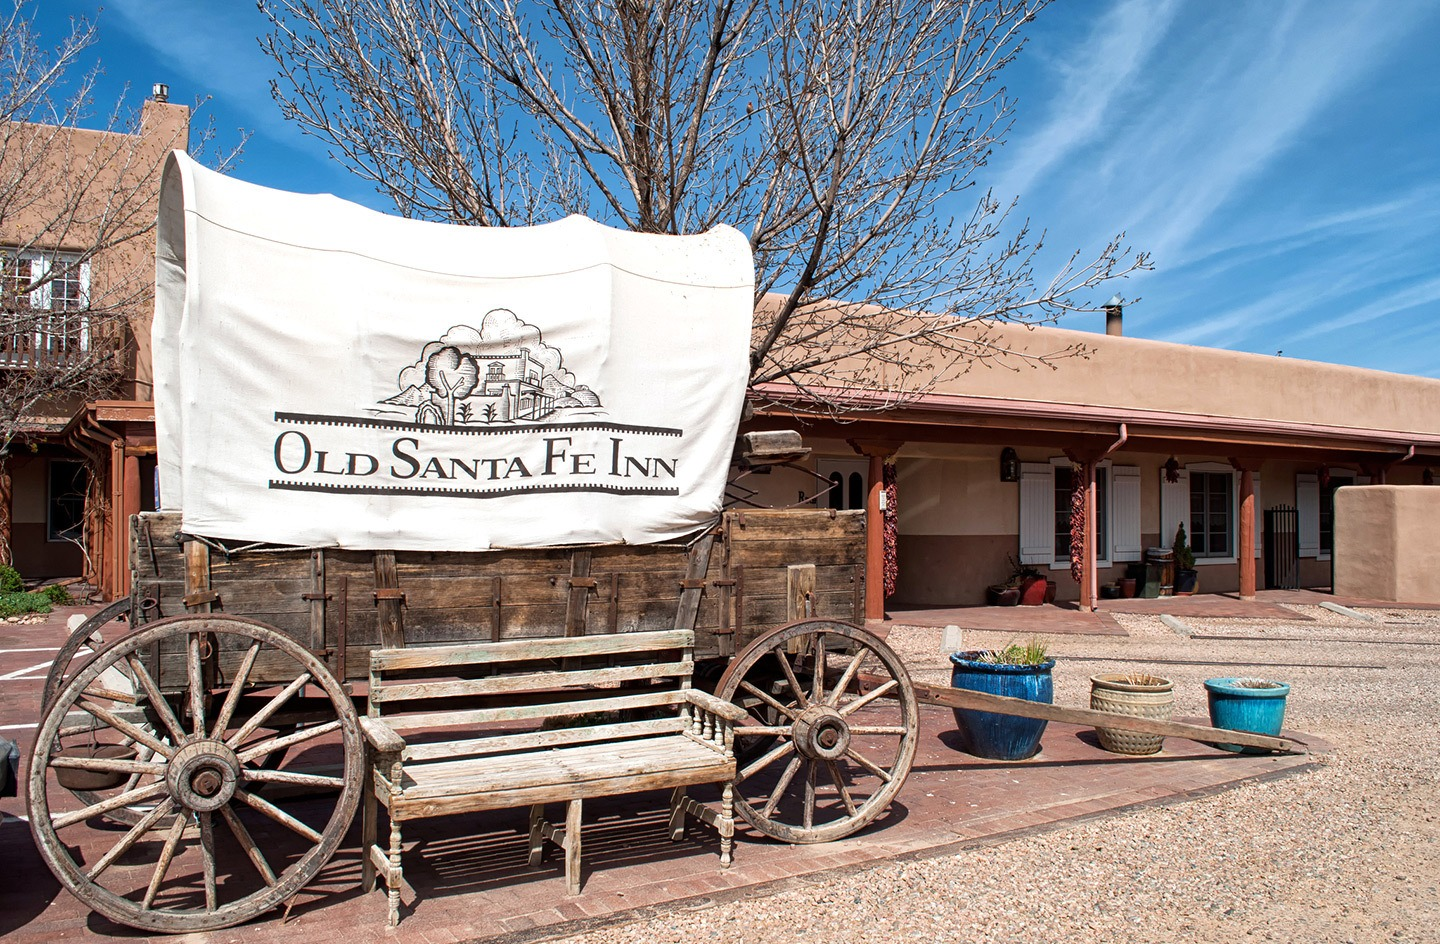 The Old Santa Fe Inn, New Mexico